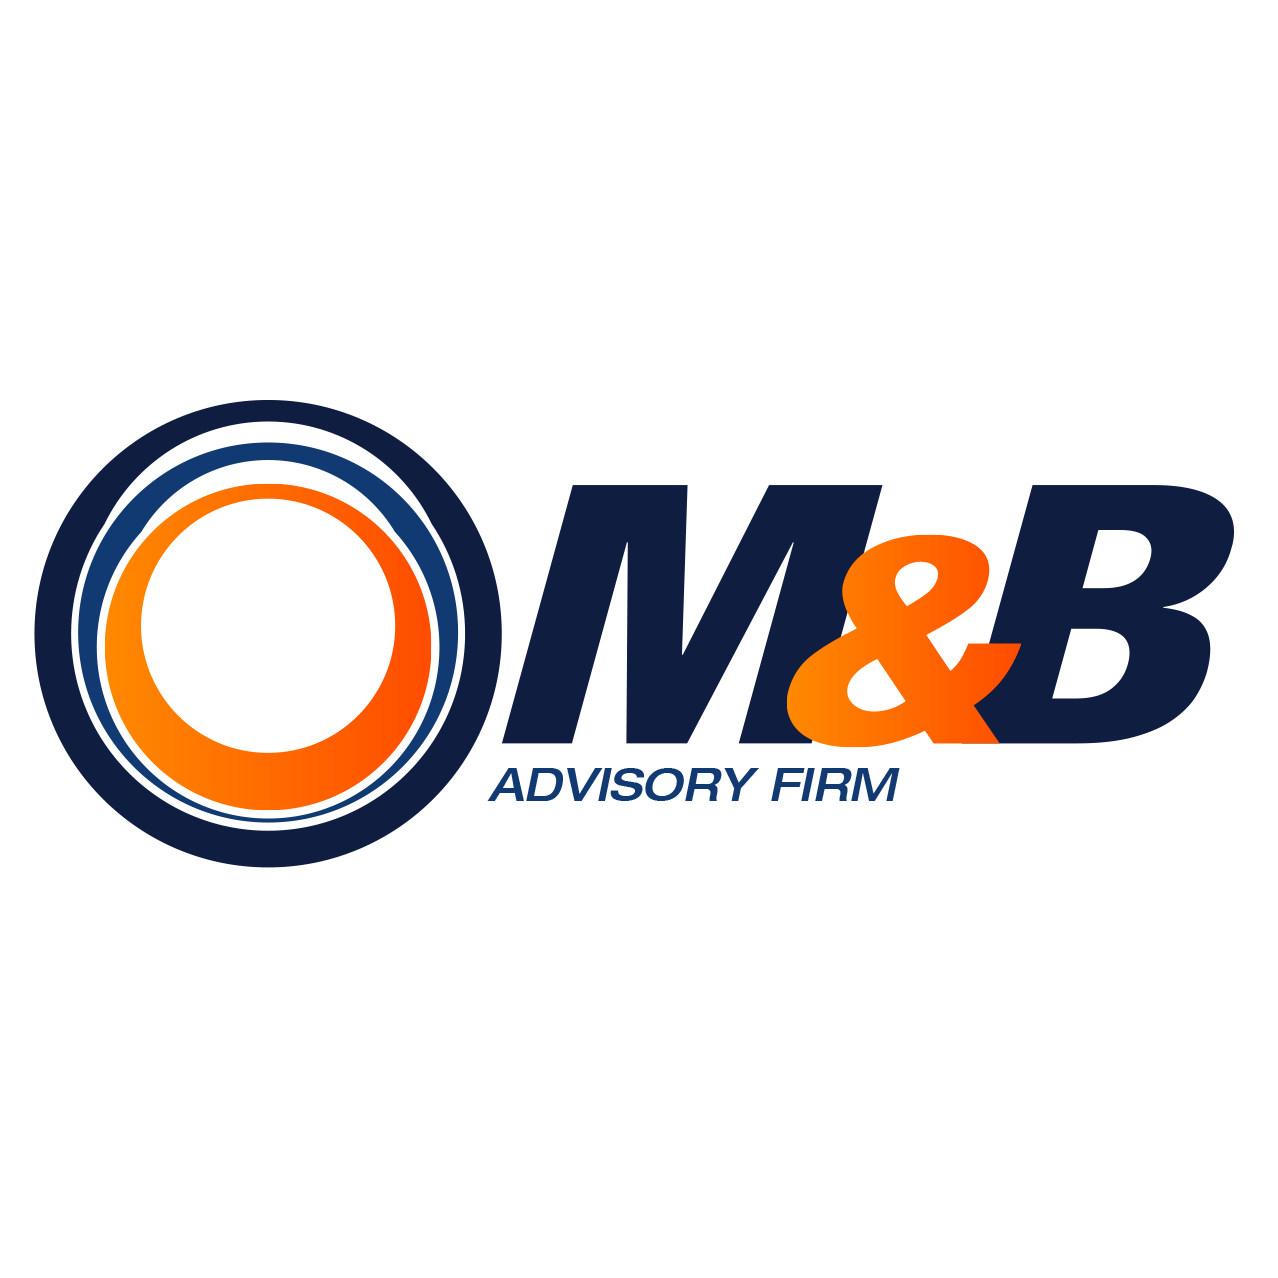 M&B Advisory Firm